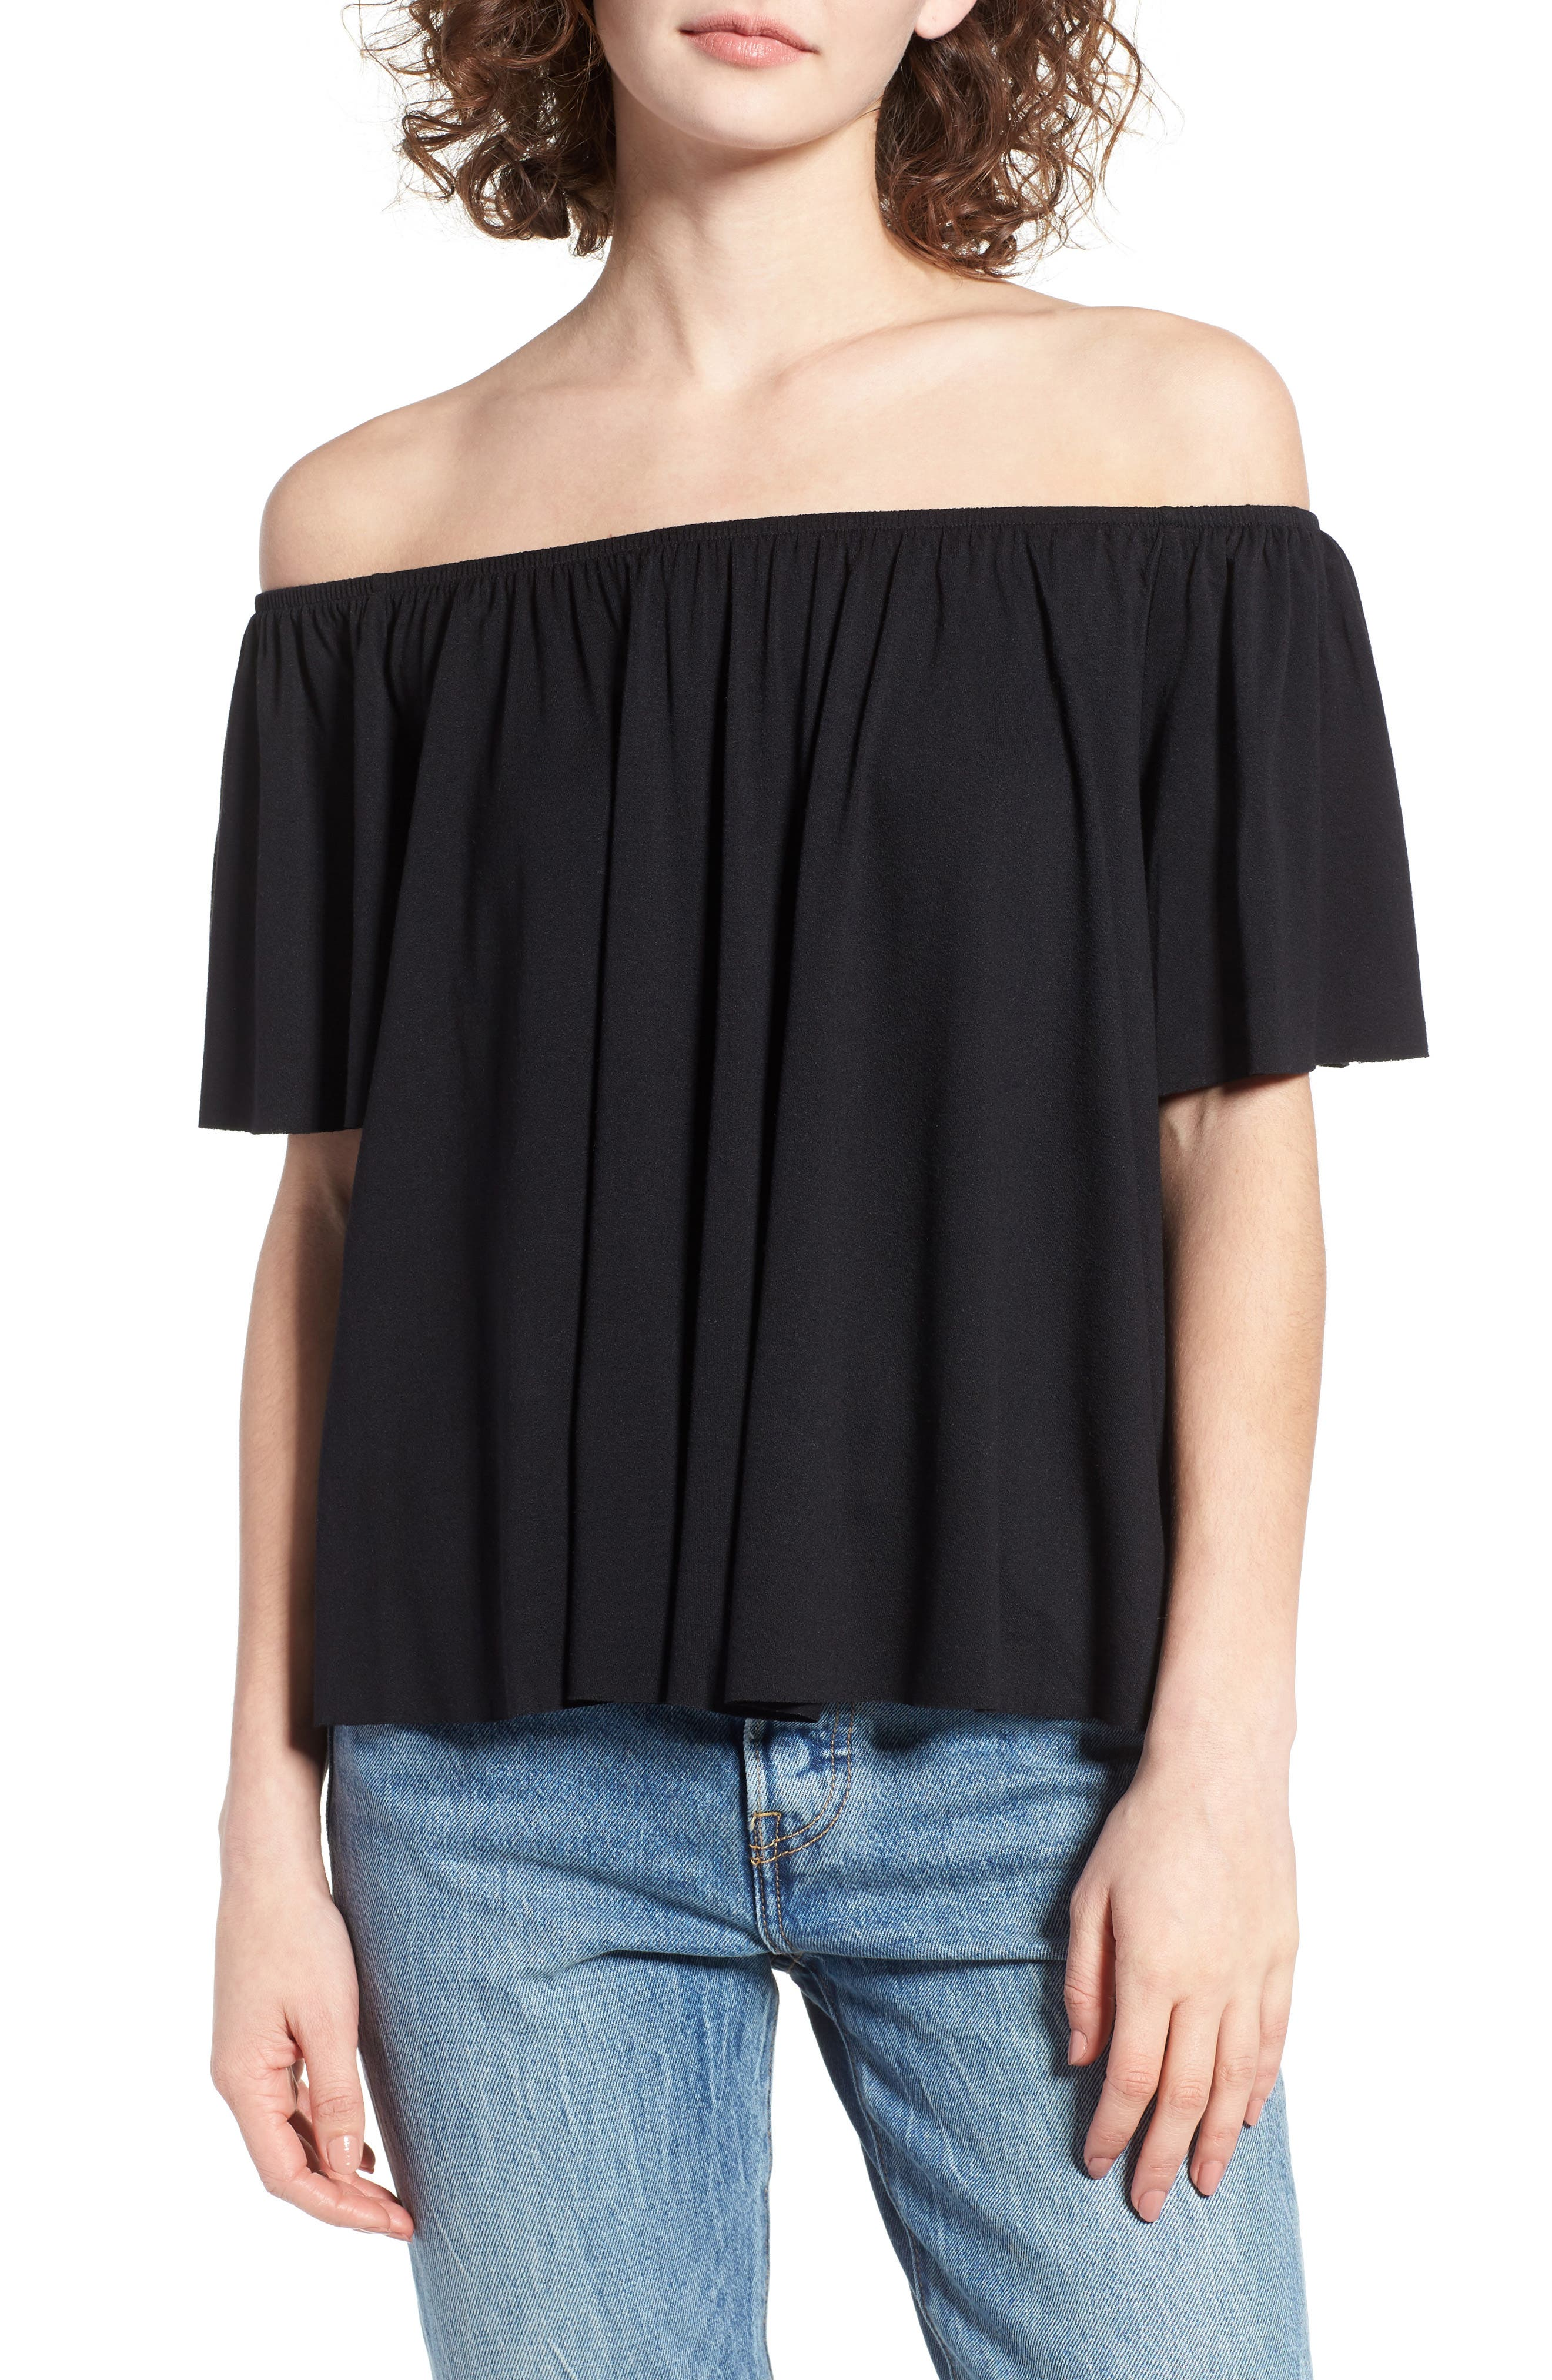 Alternate Image 1 Selected - BP. Off the Shoulder Top